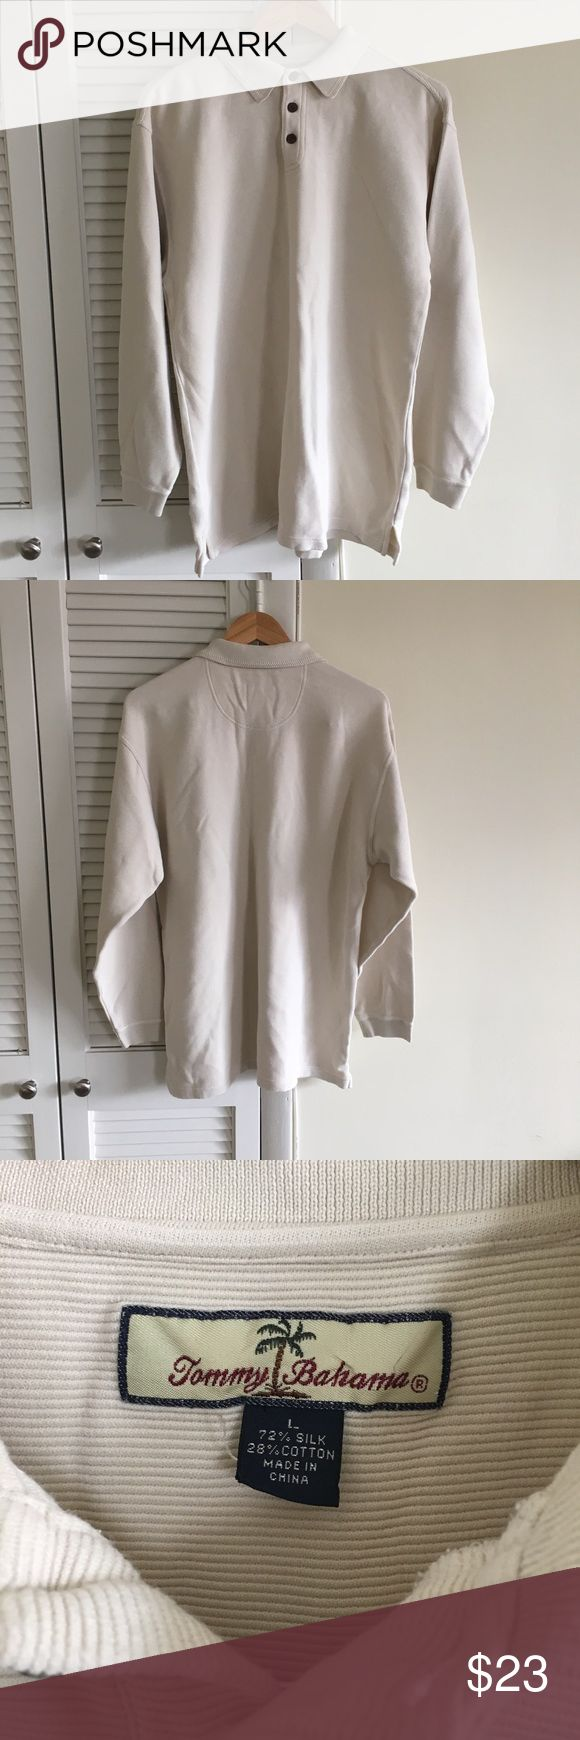 Cream silk Tommy bahama long sleeve polo shirt Cream Tommy bahama long sleeve polo rugby shirt  Excellent condition  No stains no damages no holes  Fits perfect to size  Willing to negotiate offer Tommy Bahama Shirts Tees - Long Sleeve